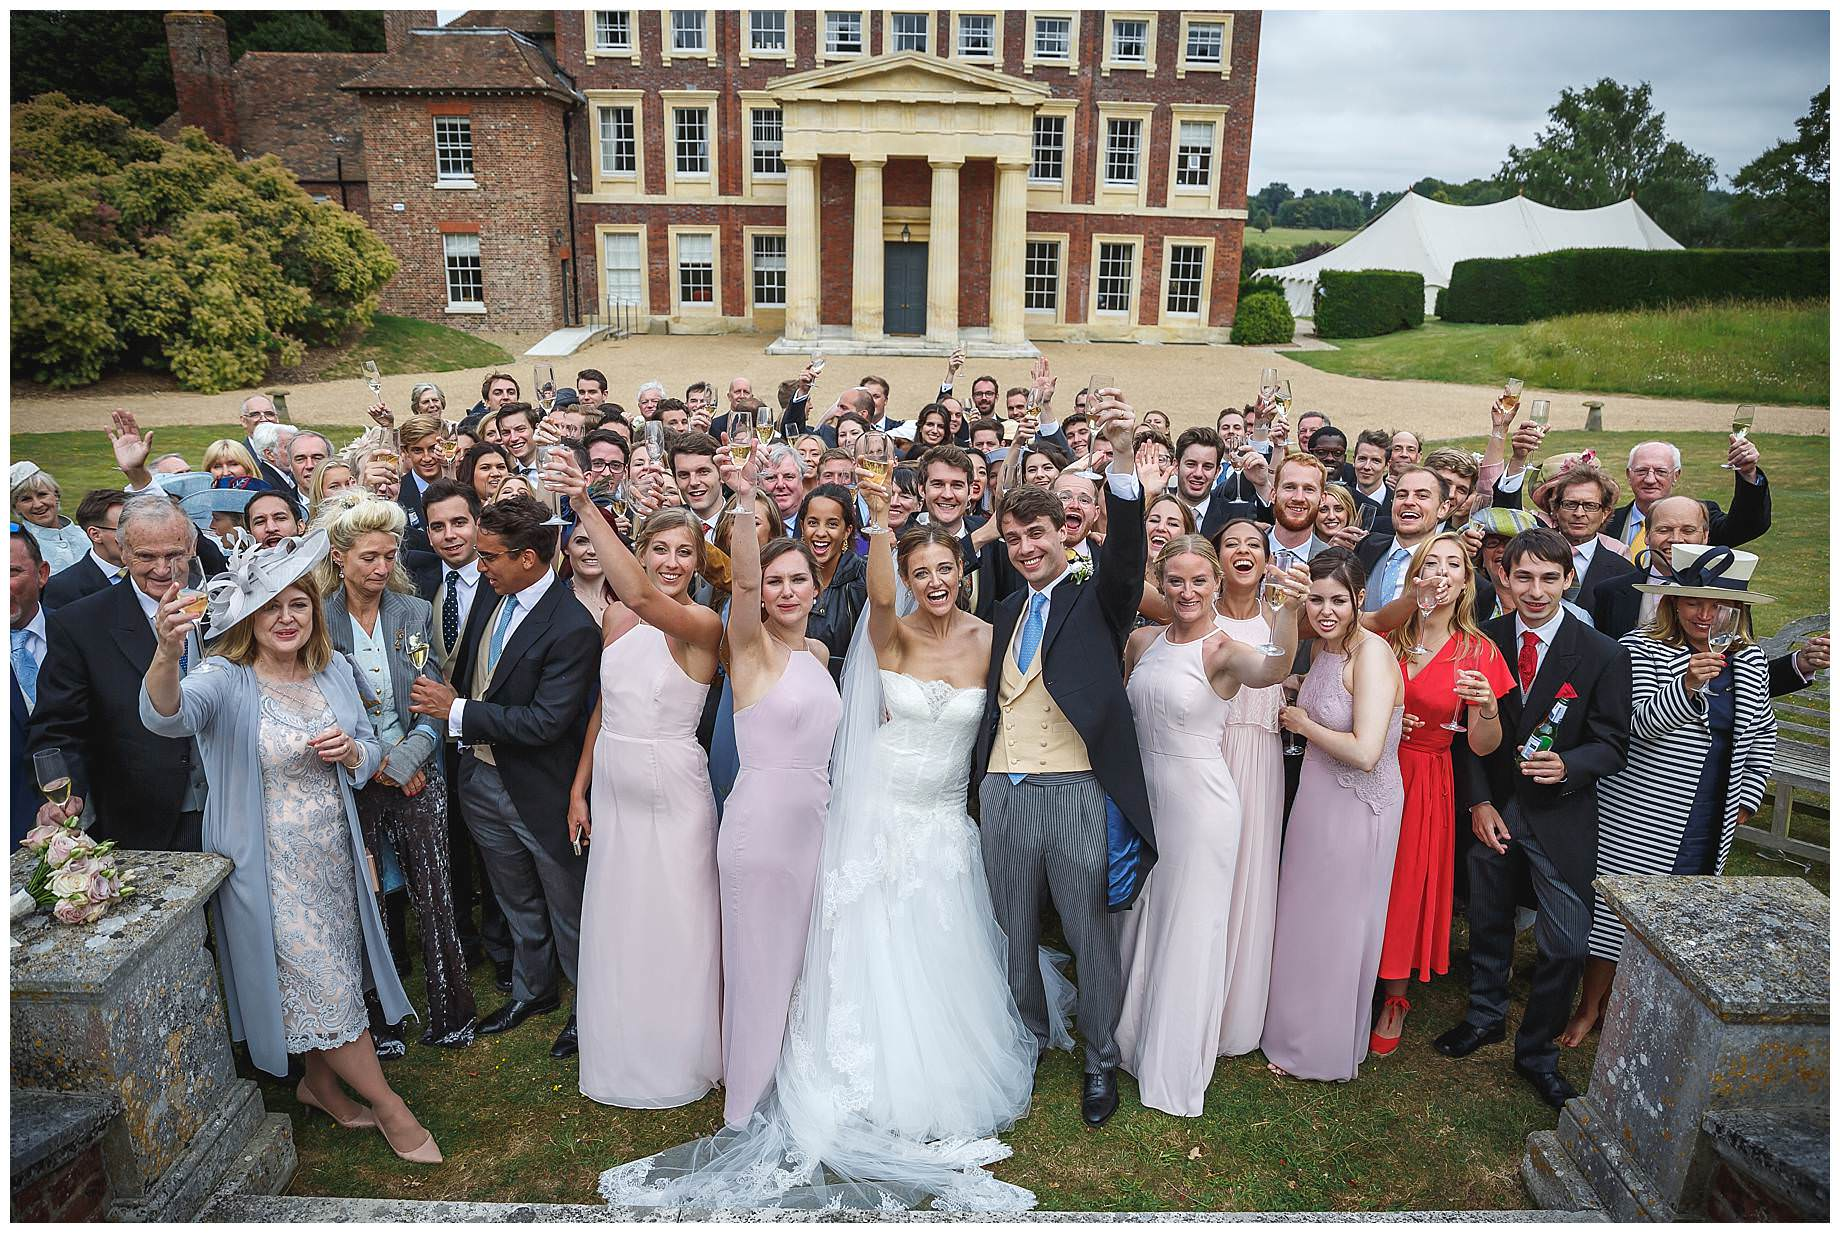 All guests at Goodnestone Park Wedding